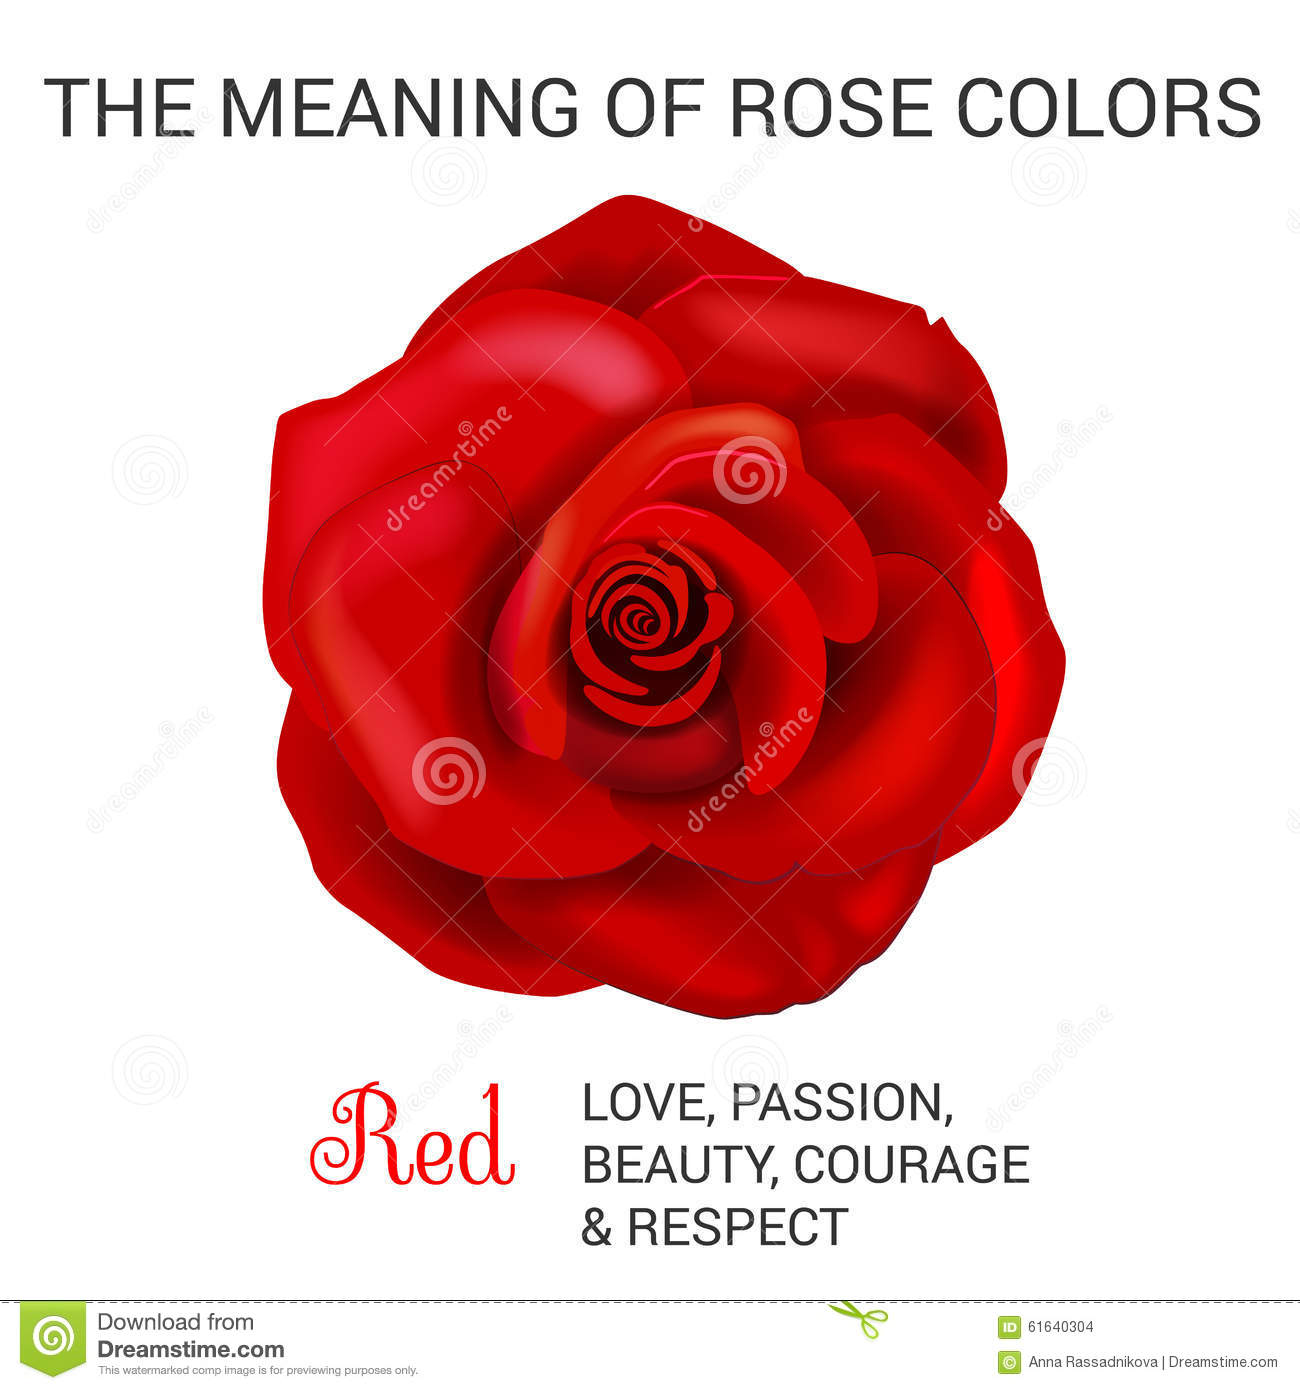 Rose Flower Meanings by their Color Variety and Numbers